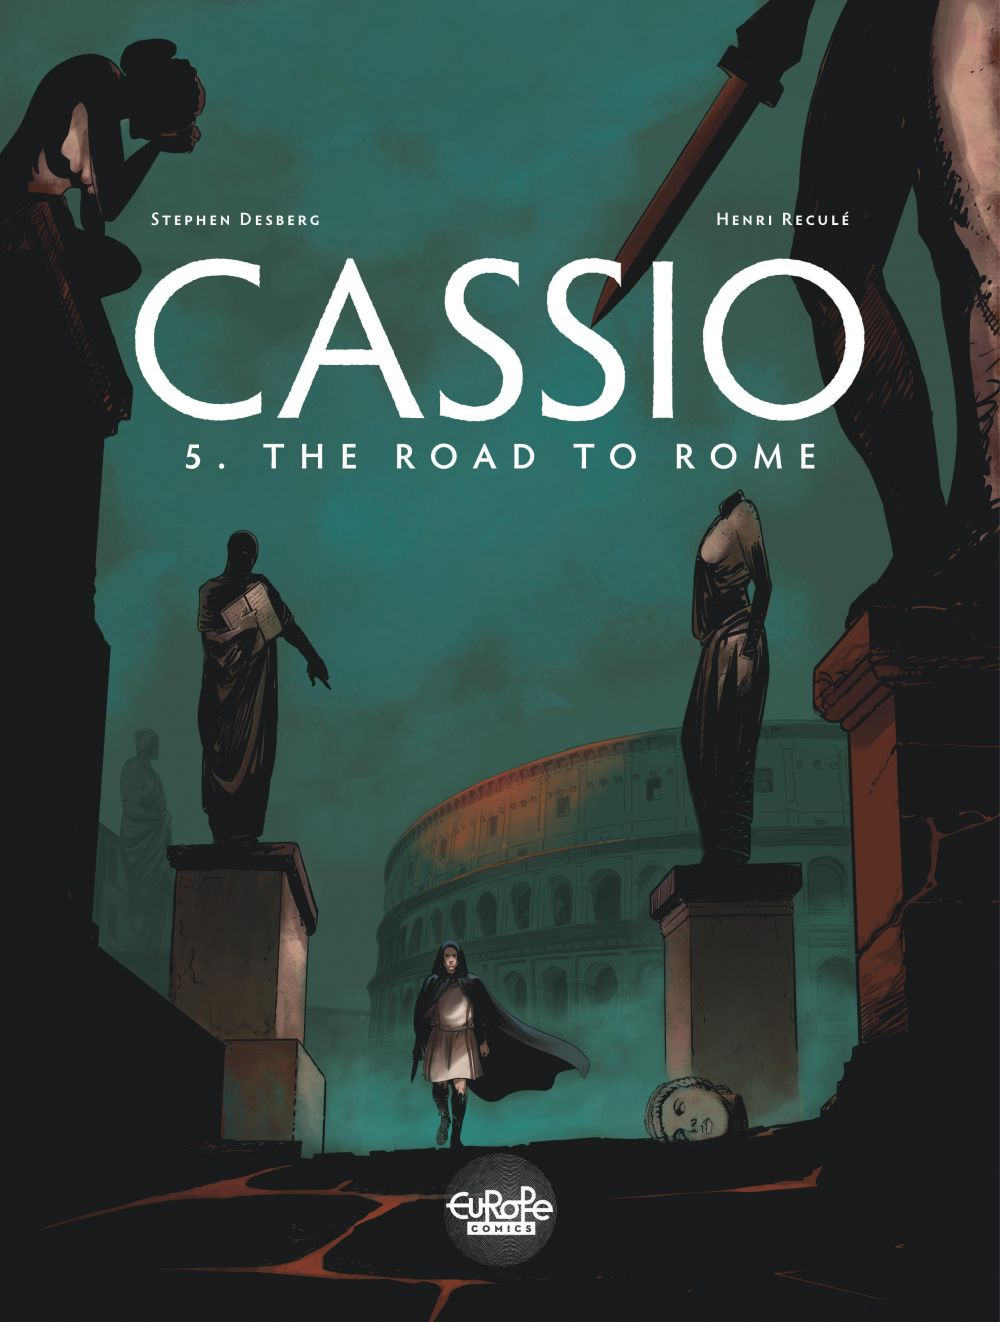 Cassio 5. The Road to Rome